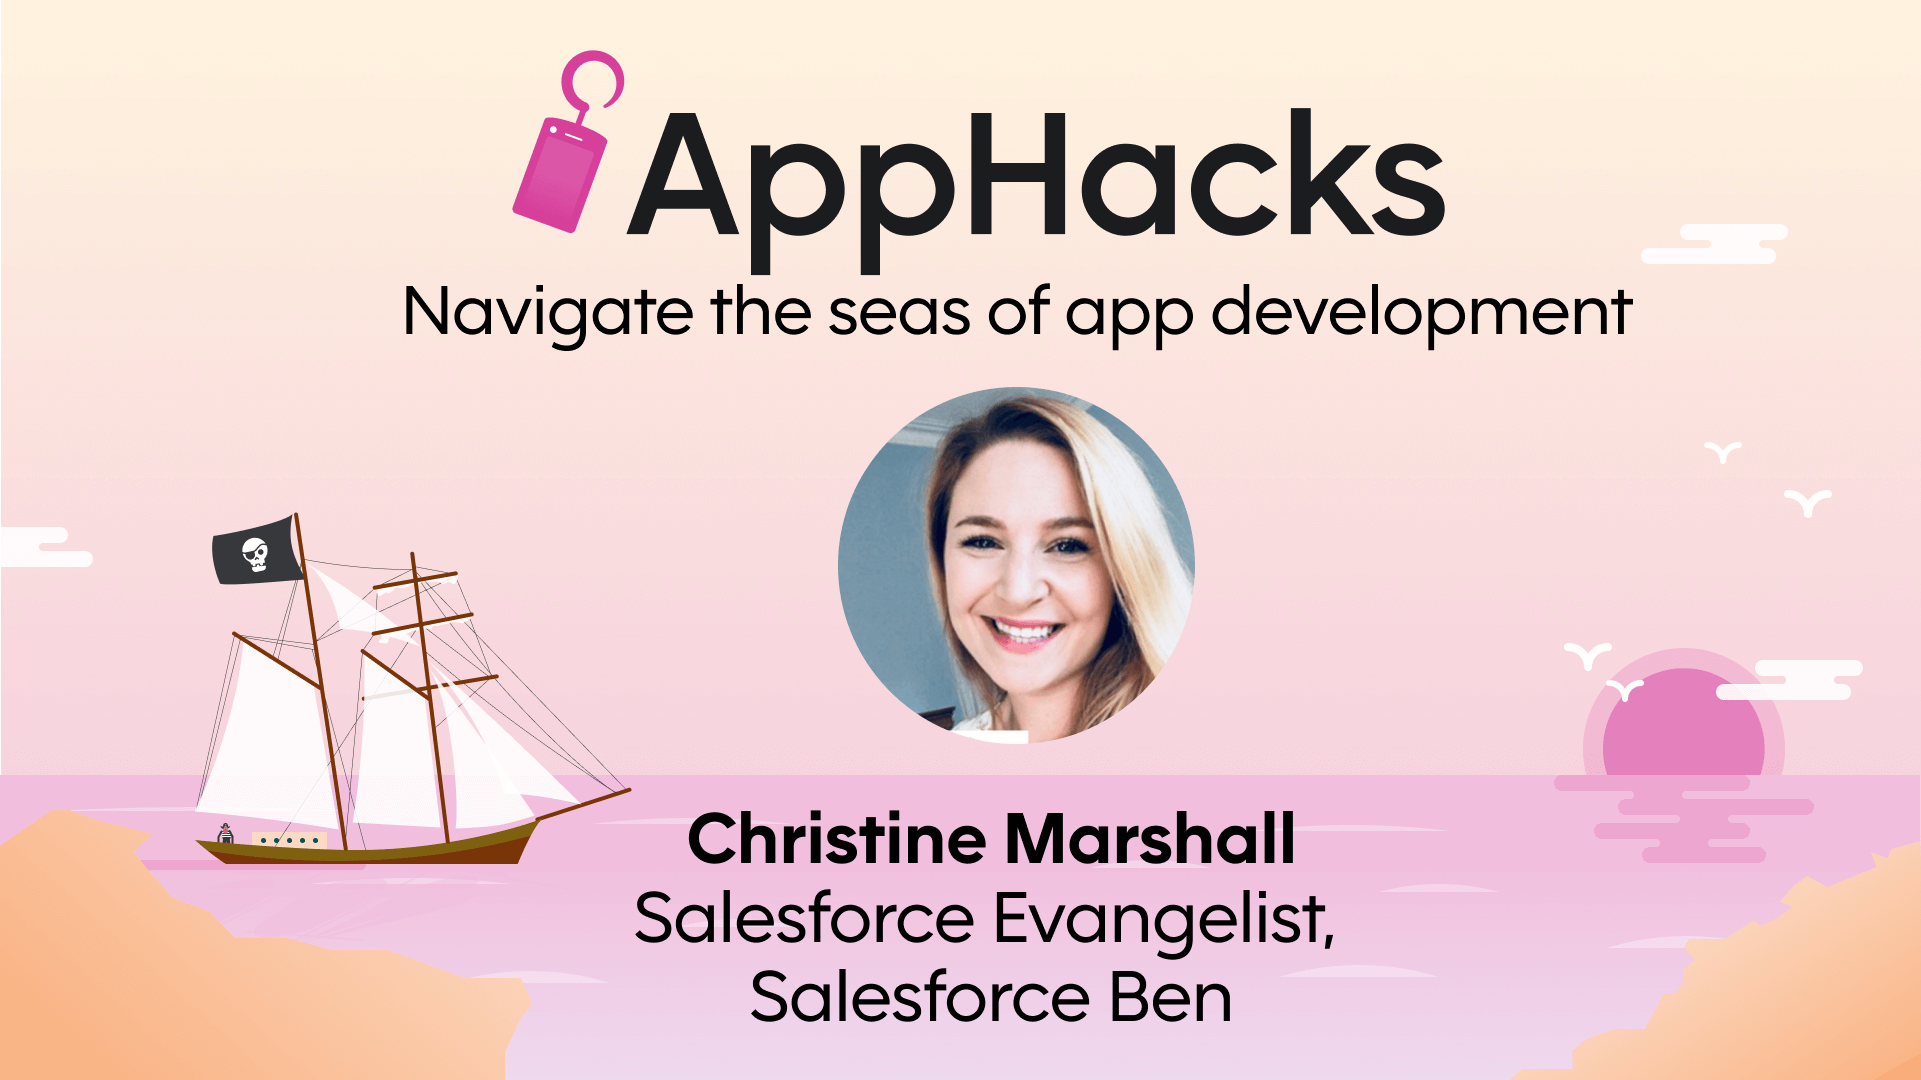 A headshot of Christine Marshall, Salesforce evangelist for Salesforce Ben, set against a pastel-colored illustration of pirate ship sailing on calm seas with the sun setting in the background